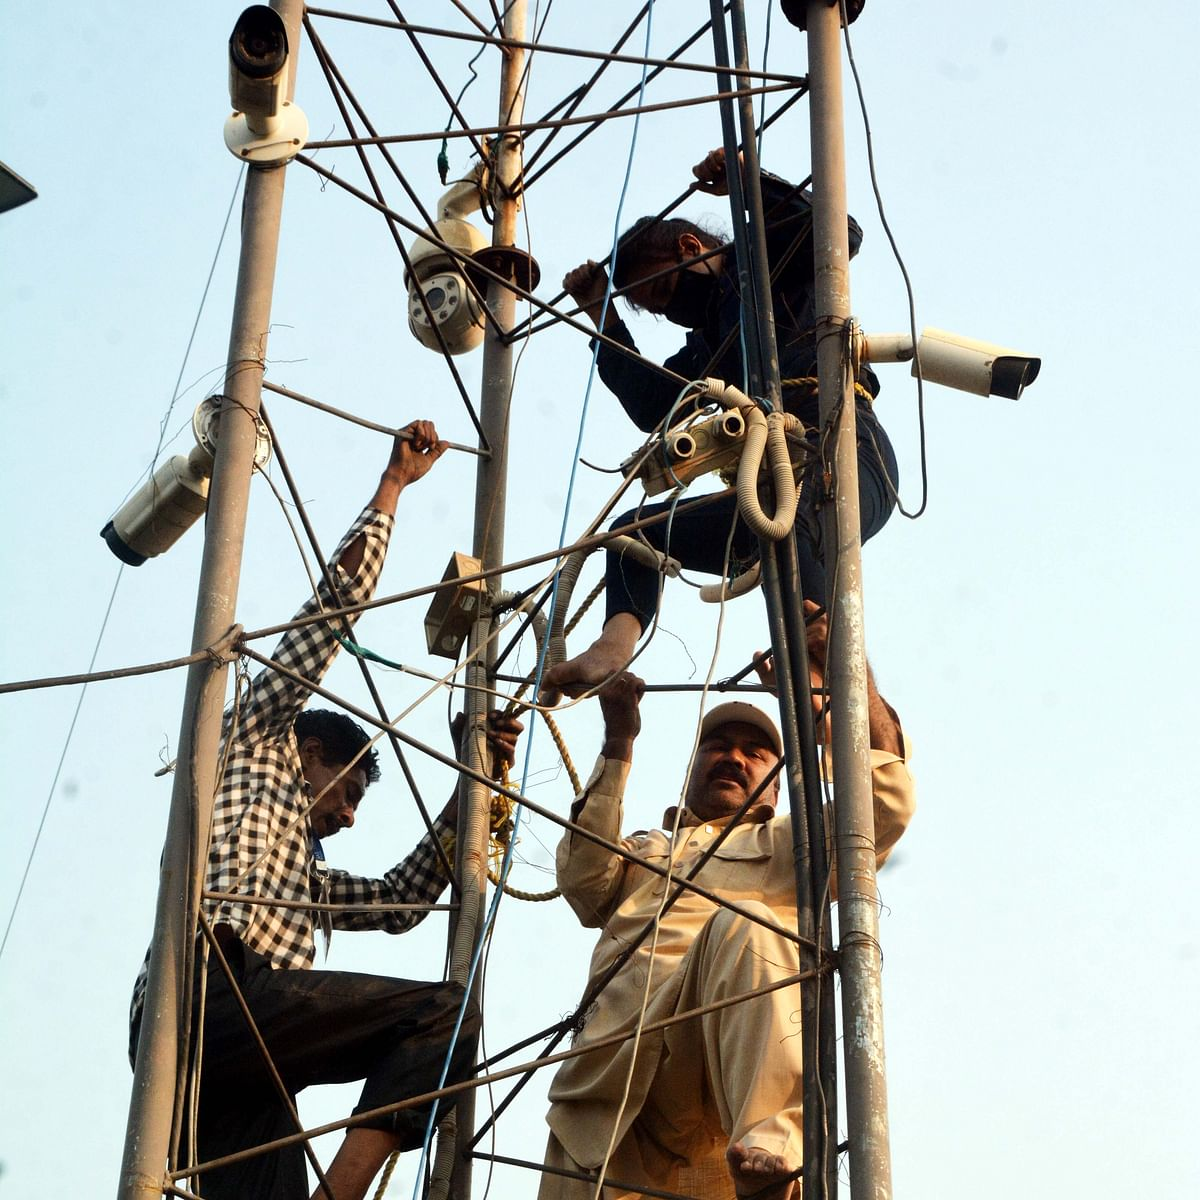 Bhopal: 27-yr-old woman climbs tower to protest harassment by guard